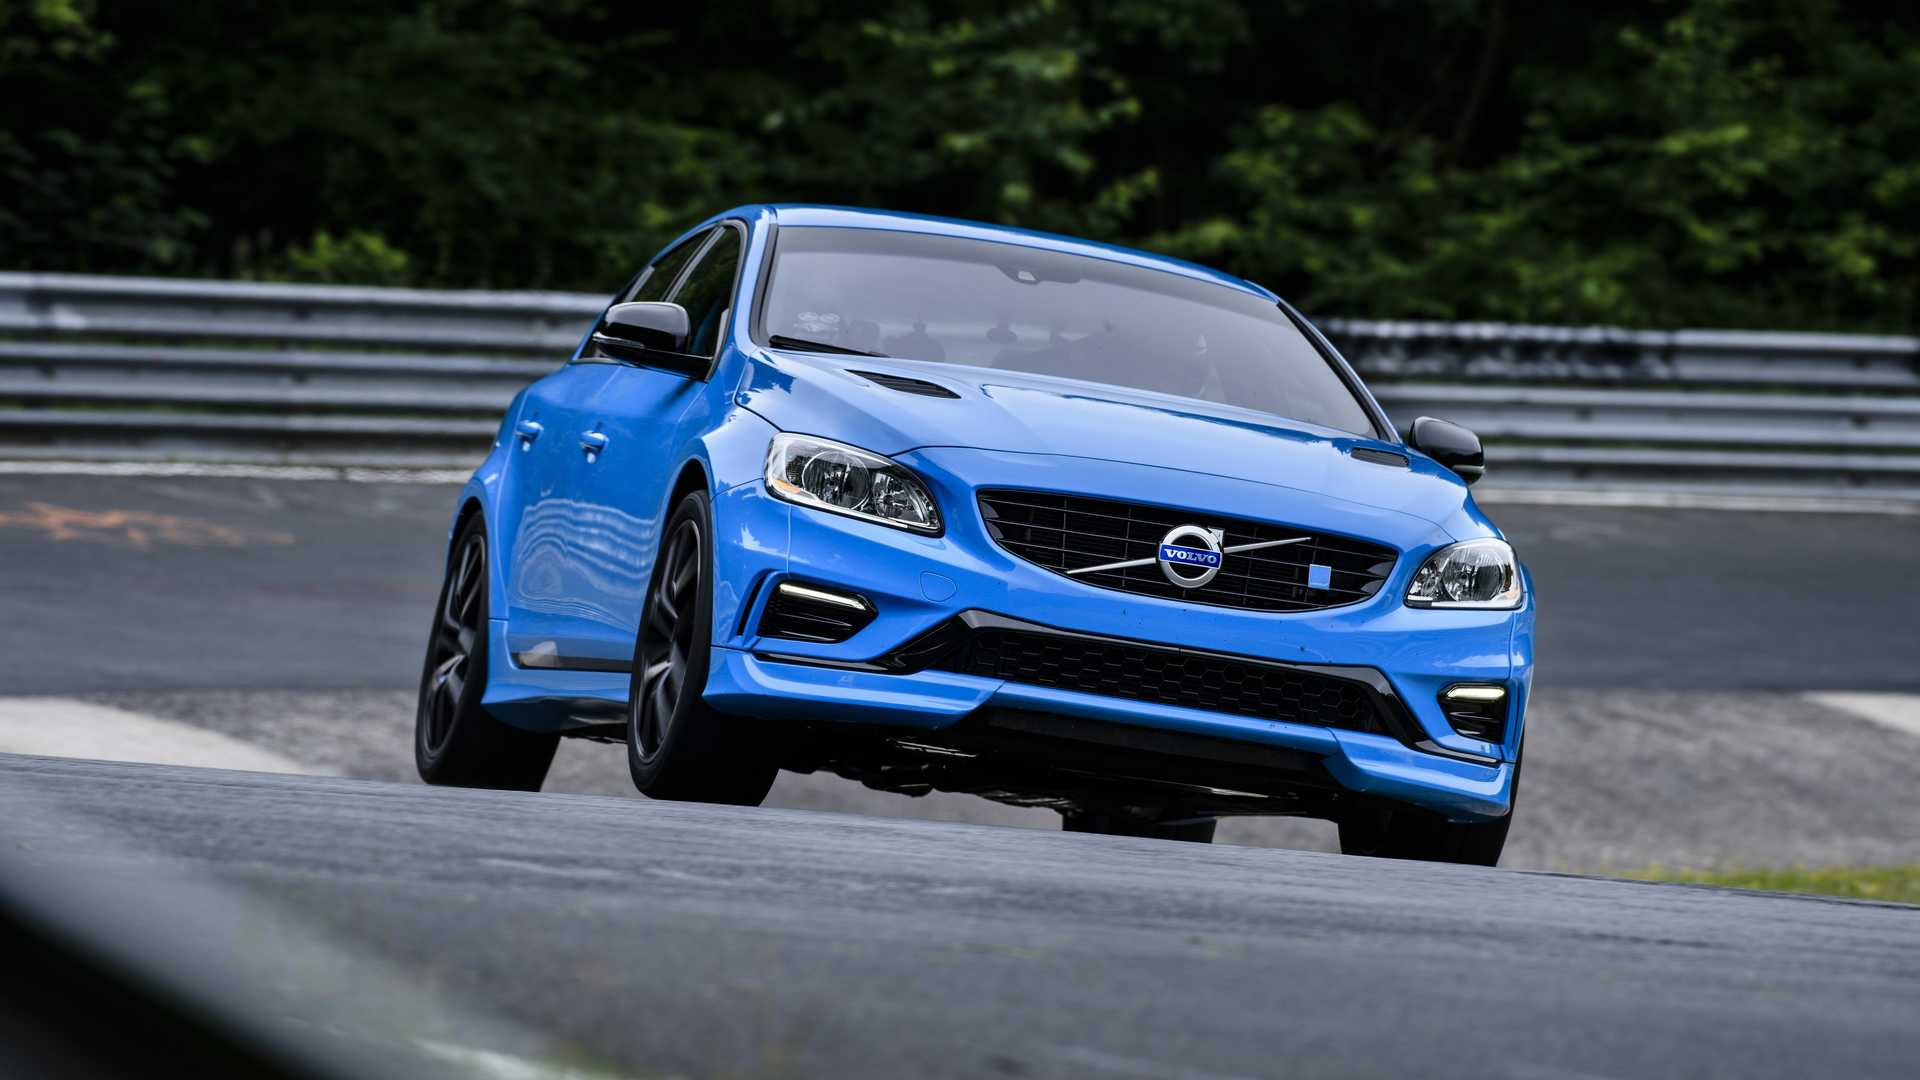 video volvo s60 polestar clinched nurburgring lap record for road legal four door car secretly. Black Bedroom Furniture Sets. Home Design Ideas